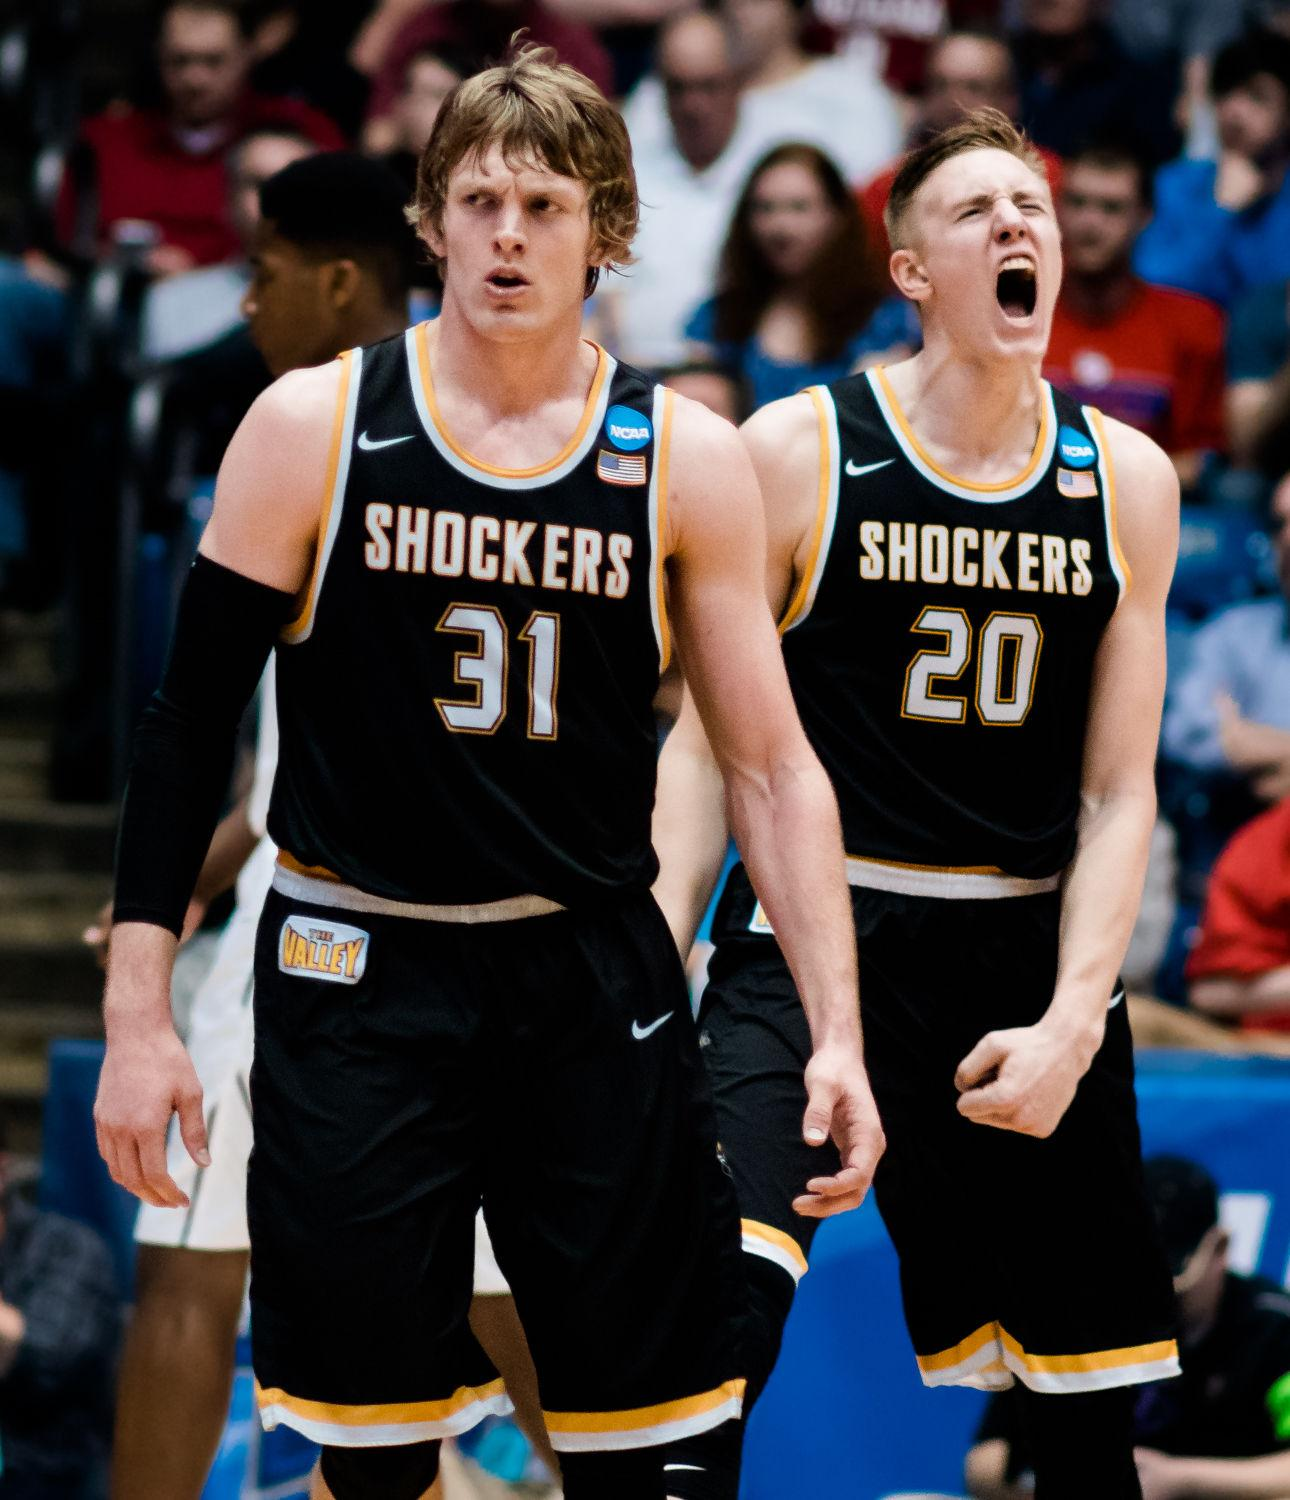 Sophomore forward Rauno Nurger celebrates a Vanderbilt turnover with teammate Ron Baker. Nurger scored six points in 17 minutes of action.